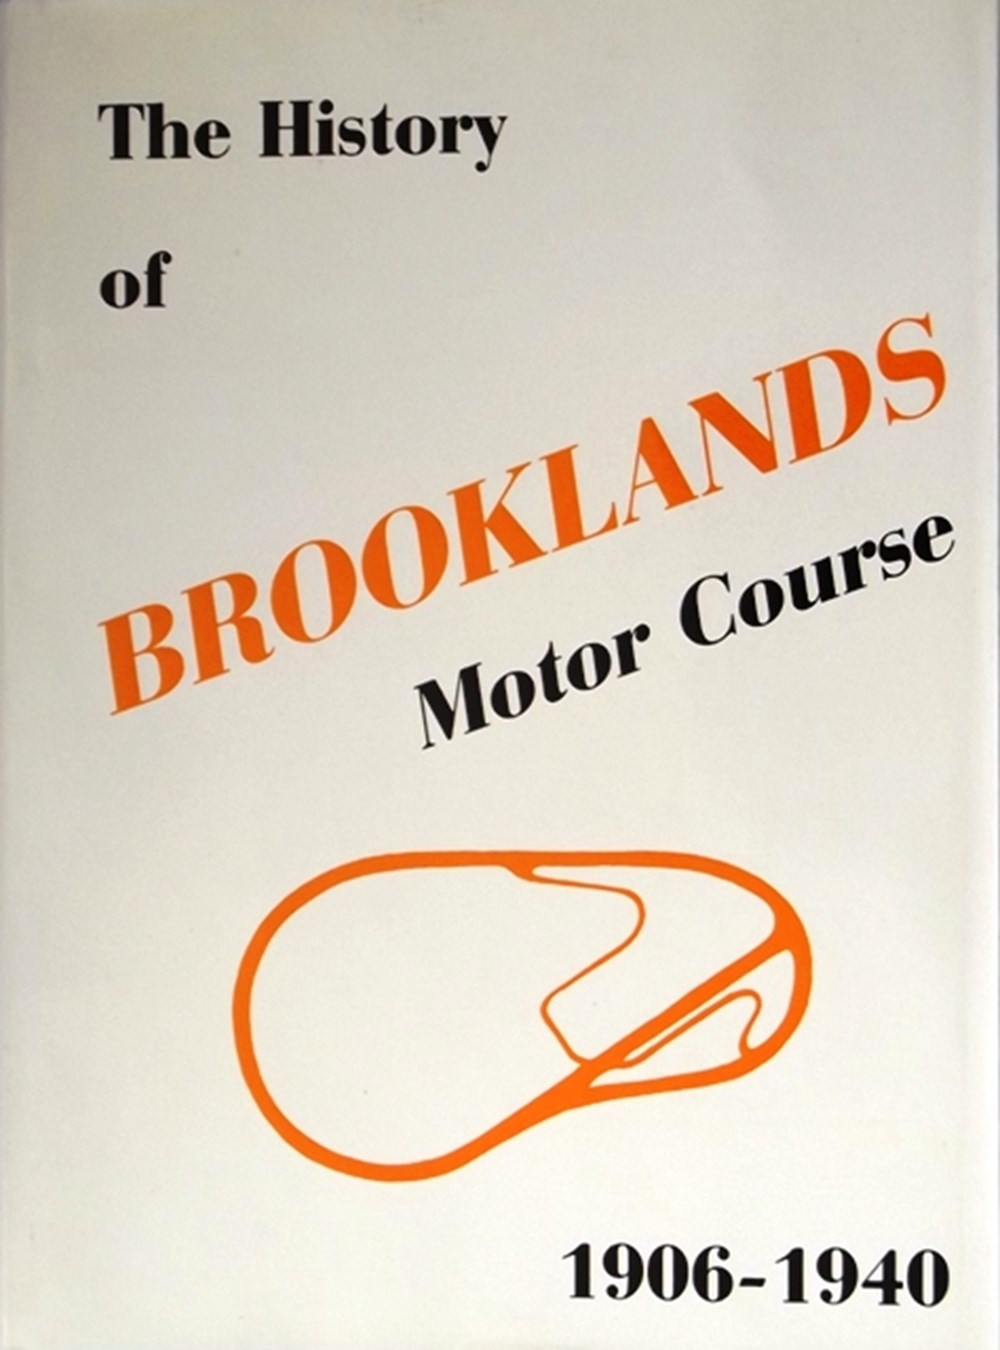 Lot 042 - The History of Brooklands Motor Course